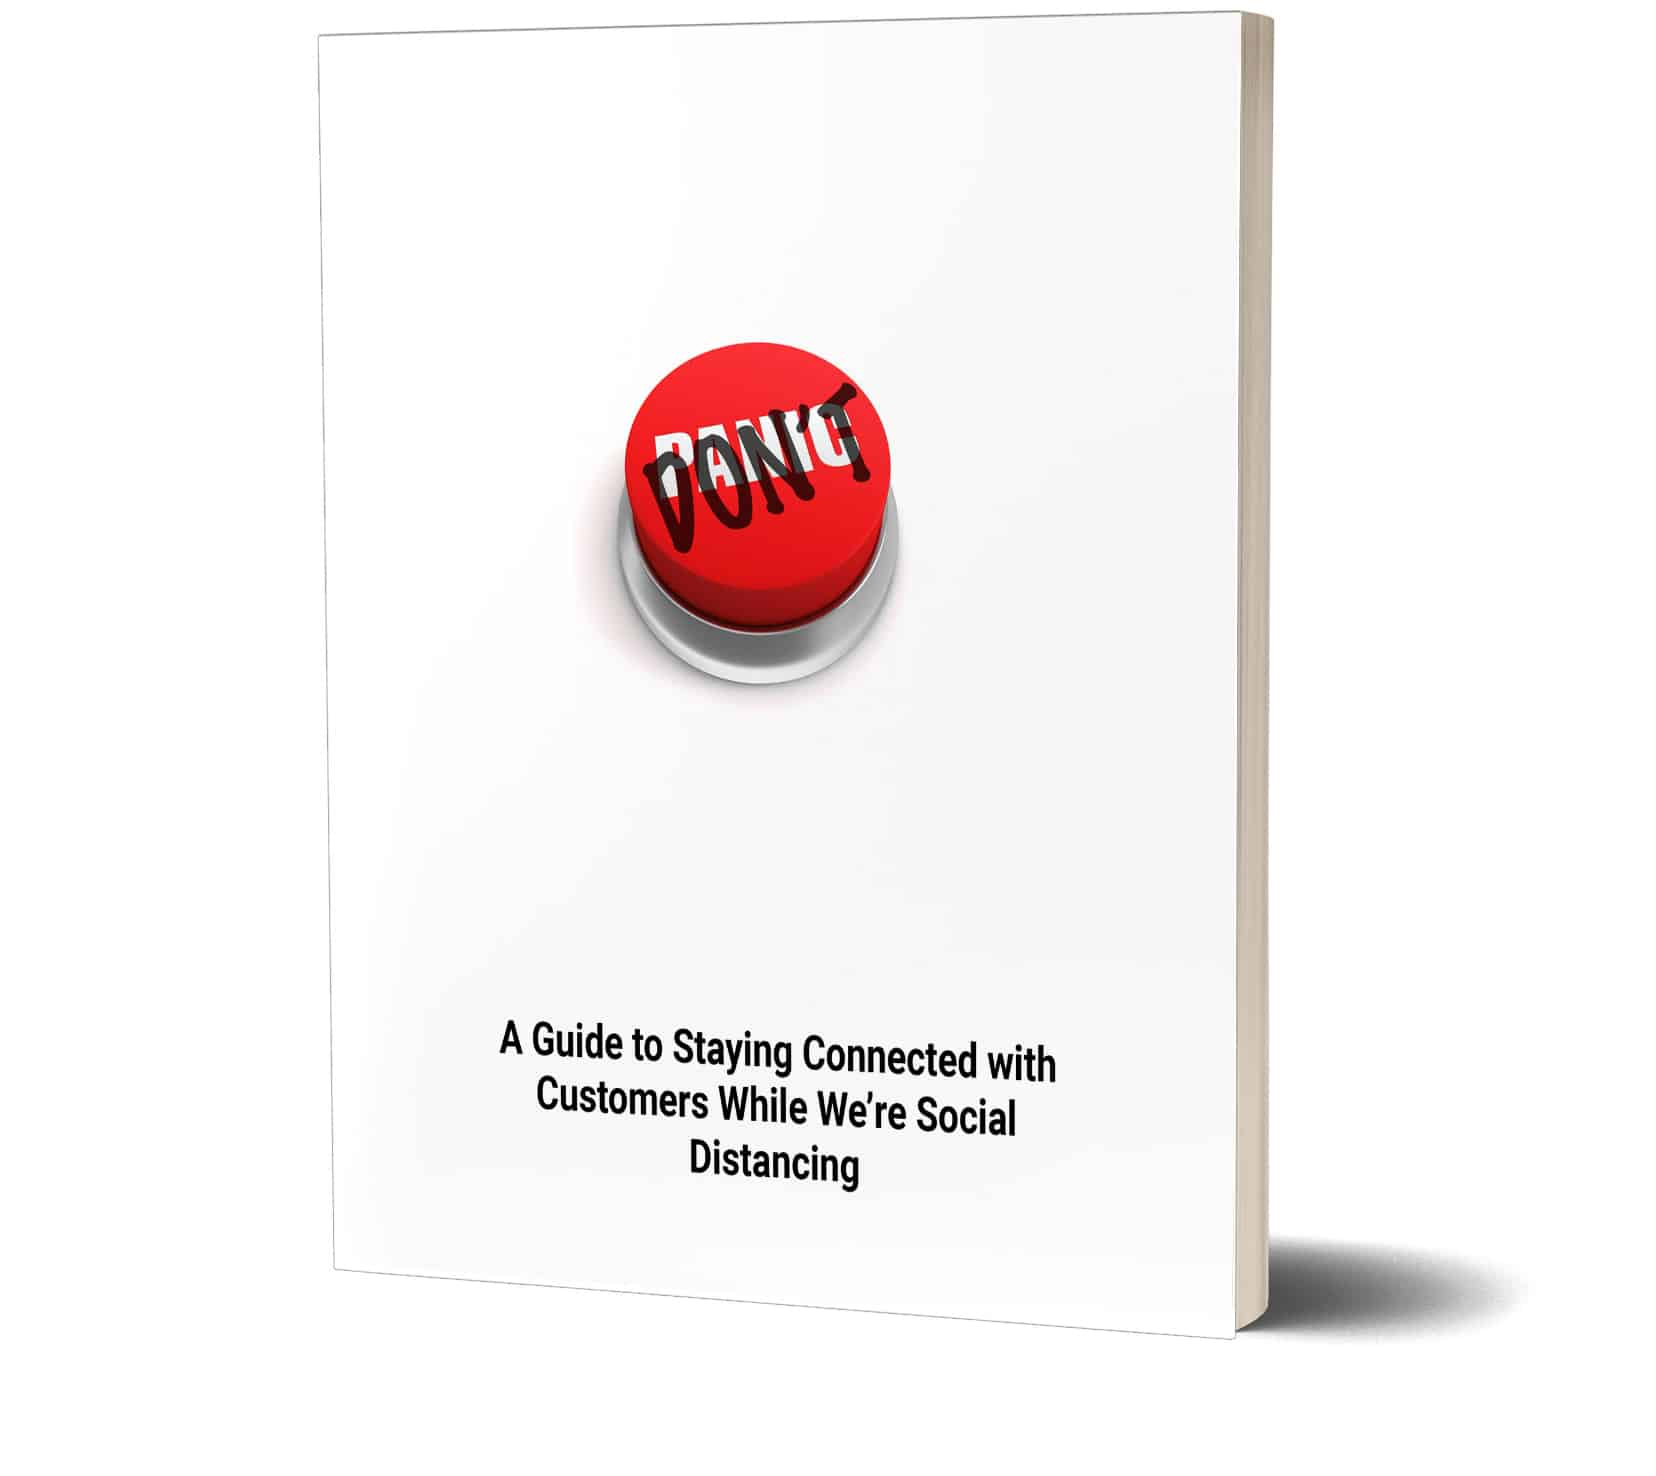 A Guide to Staying Connected with Customers While We're Social Distancing